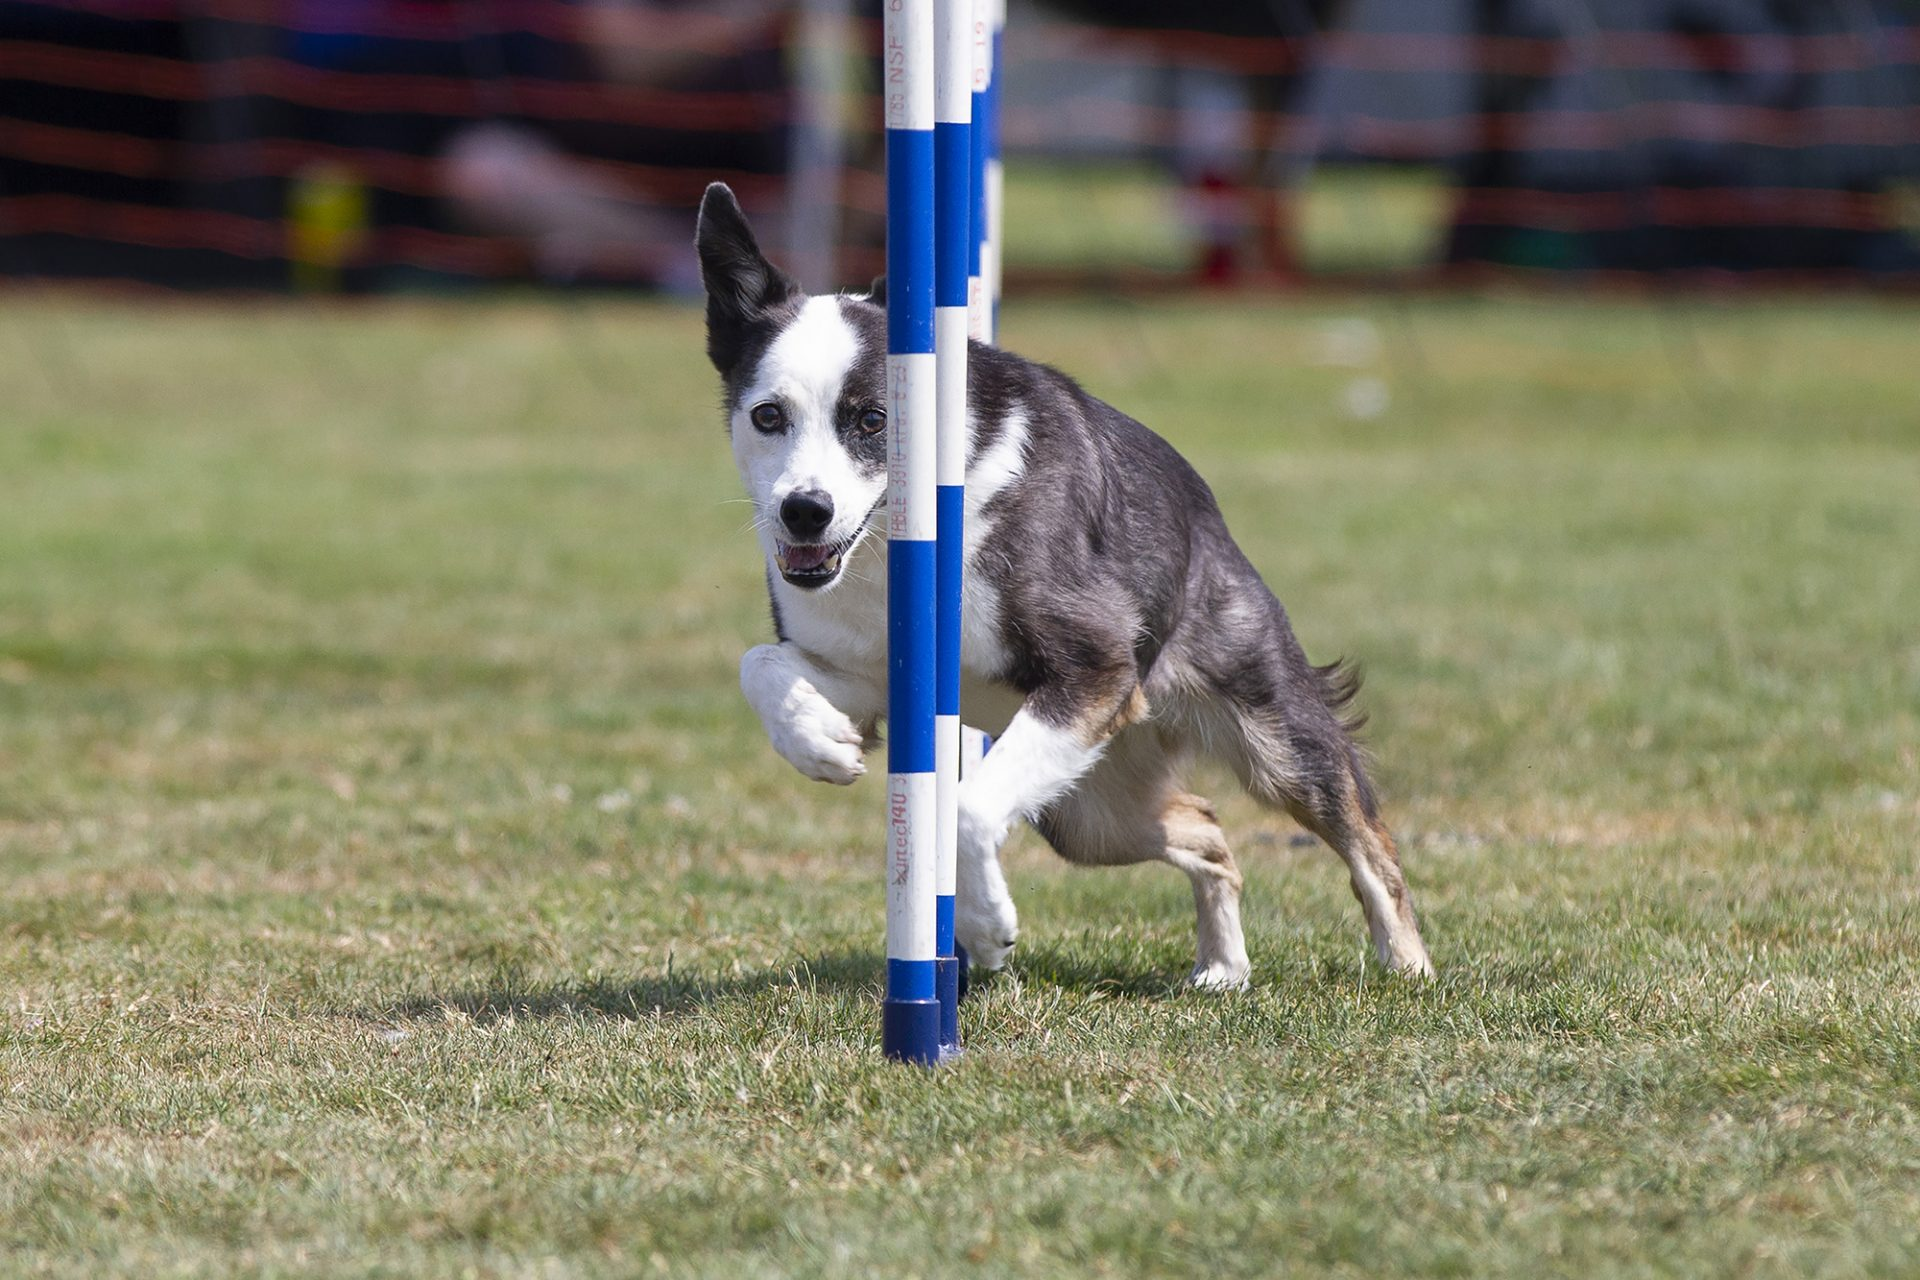 mixed breed dog in weave poles in dog agility